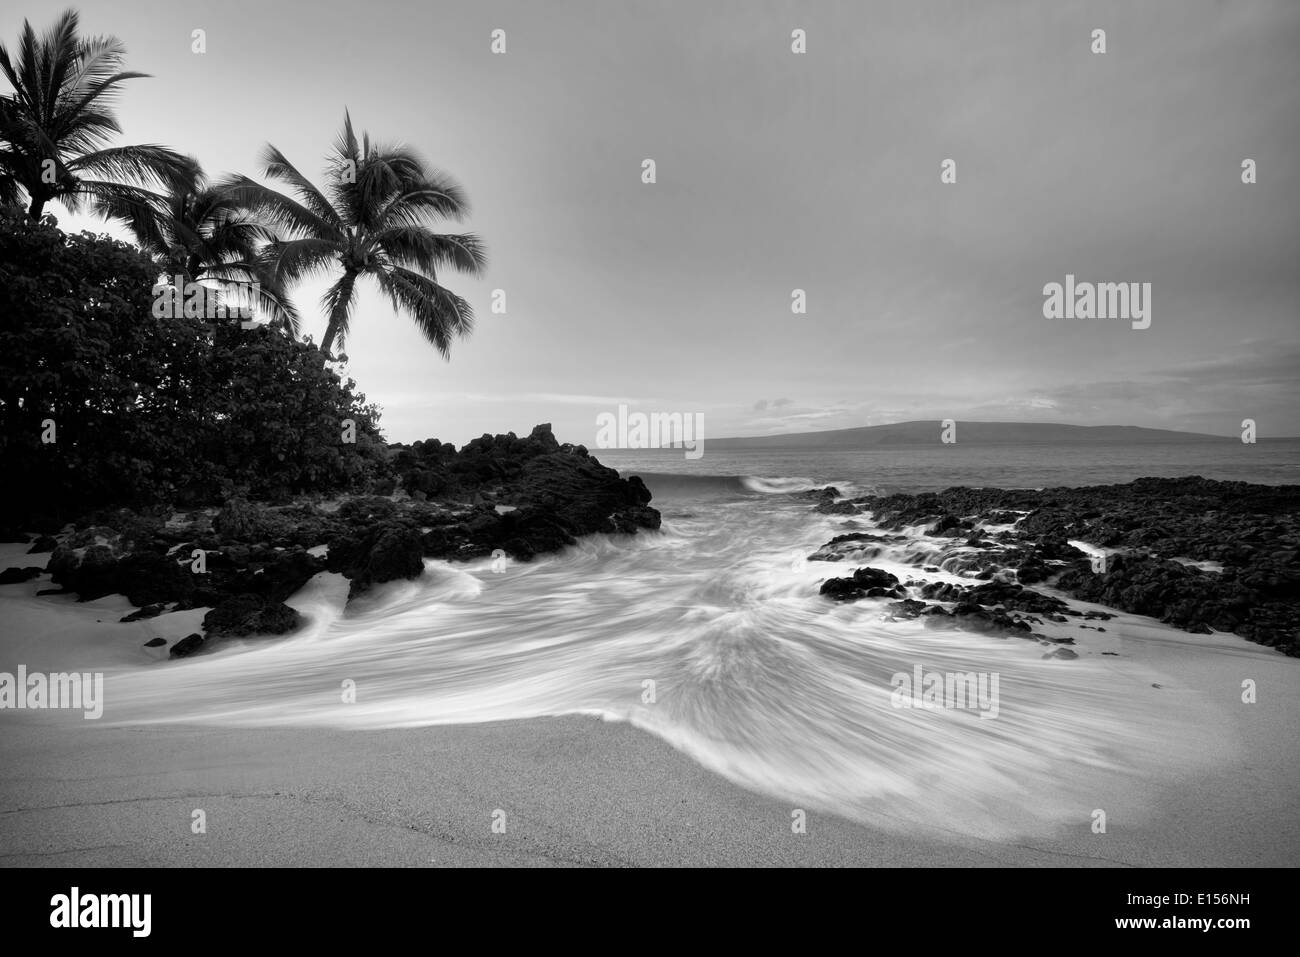 Secluded beach with palm trees and sunrise. Maui, Hawaii - Stock Image